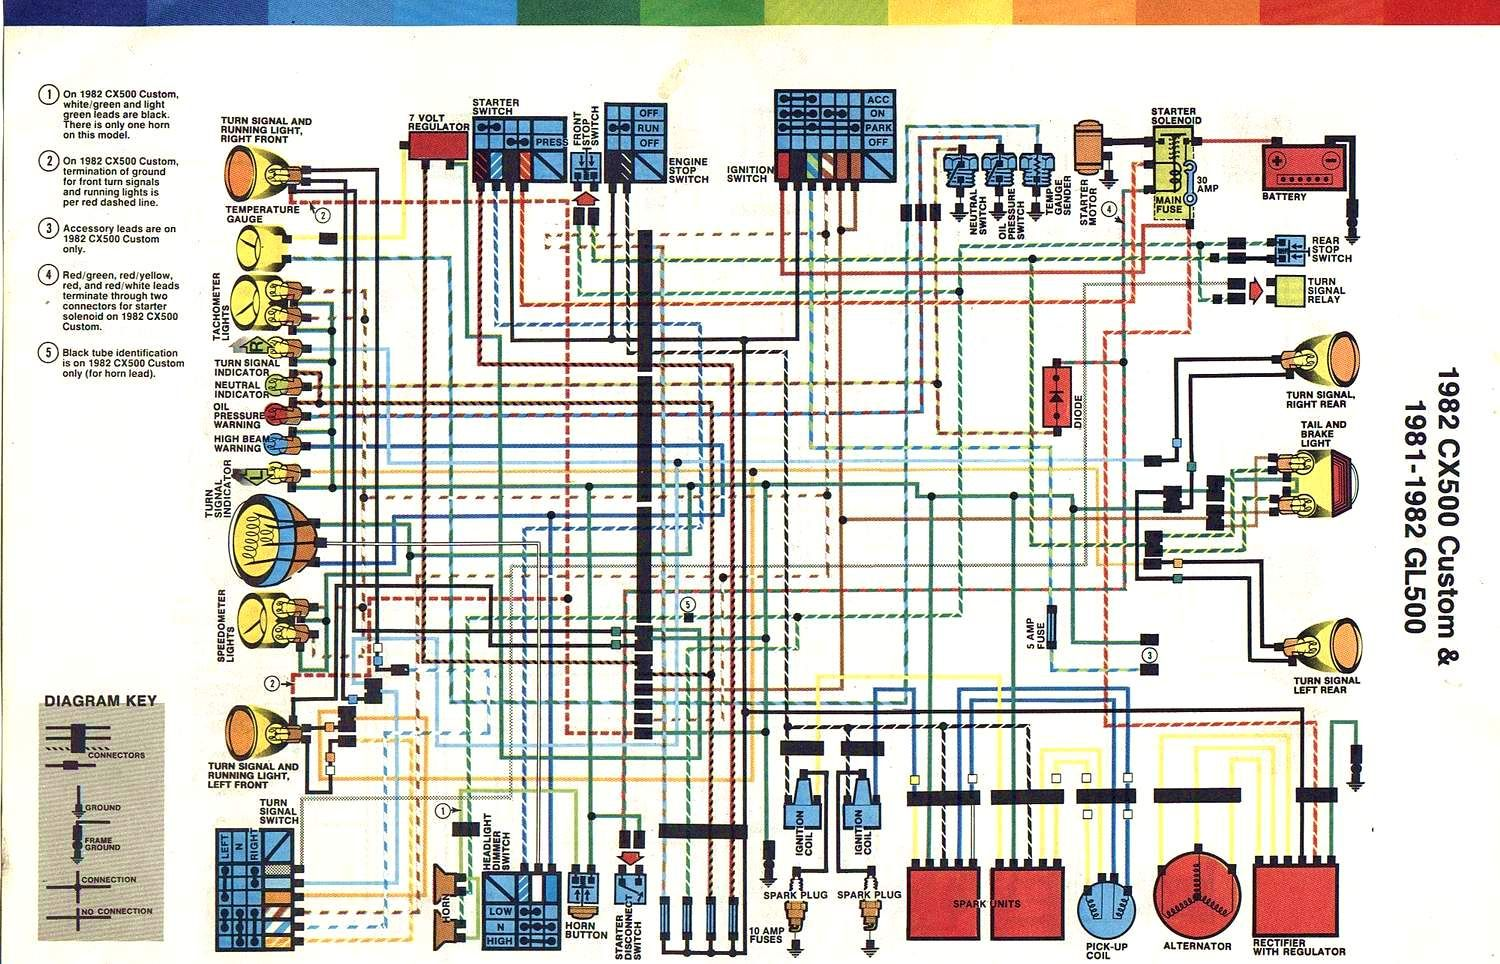 [DIAGRAM_5LK]  36C72F 1981 Honda Goldwing Wiring Diagram | Wiring Library | 1983 Honda Nighthawk Wiring Harness Diagram |  | Wiring Library